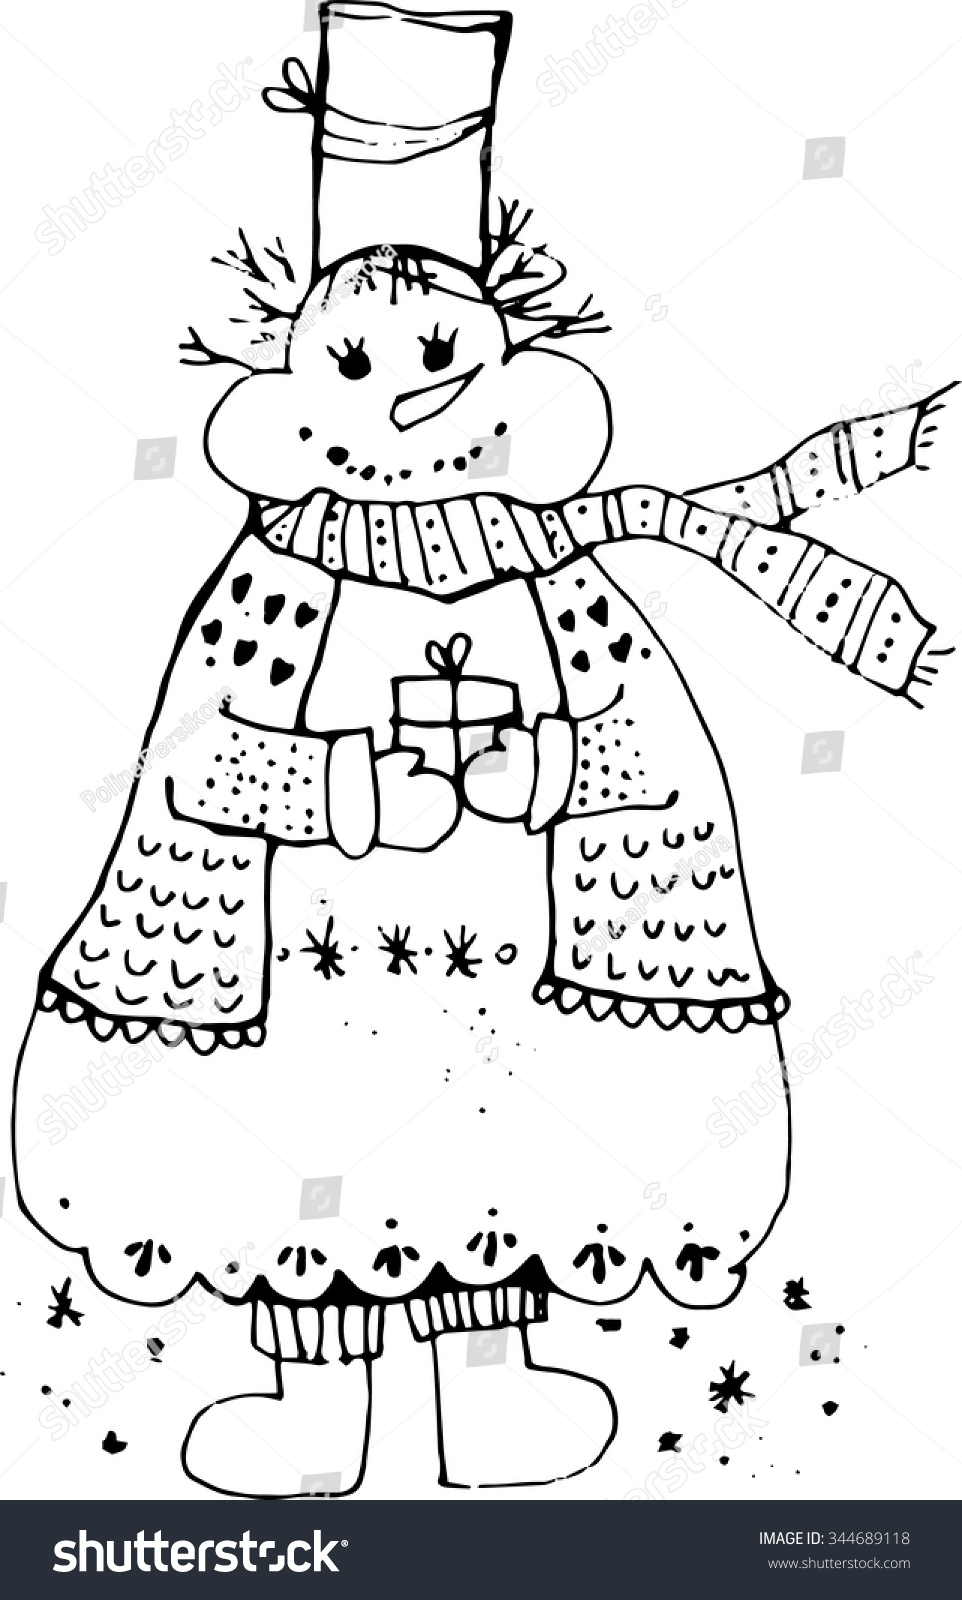 New Year S Line Art : New year snowman line art stock vector